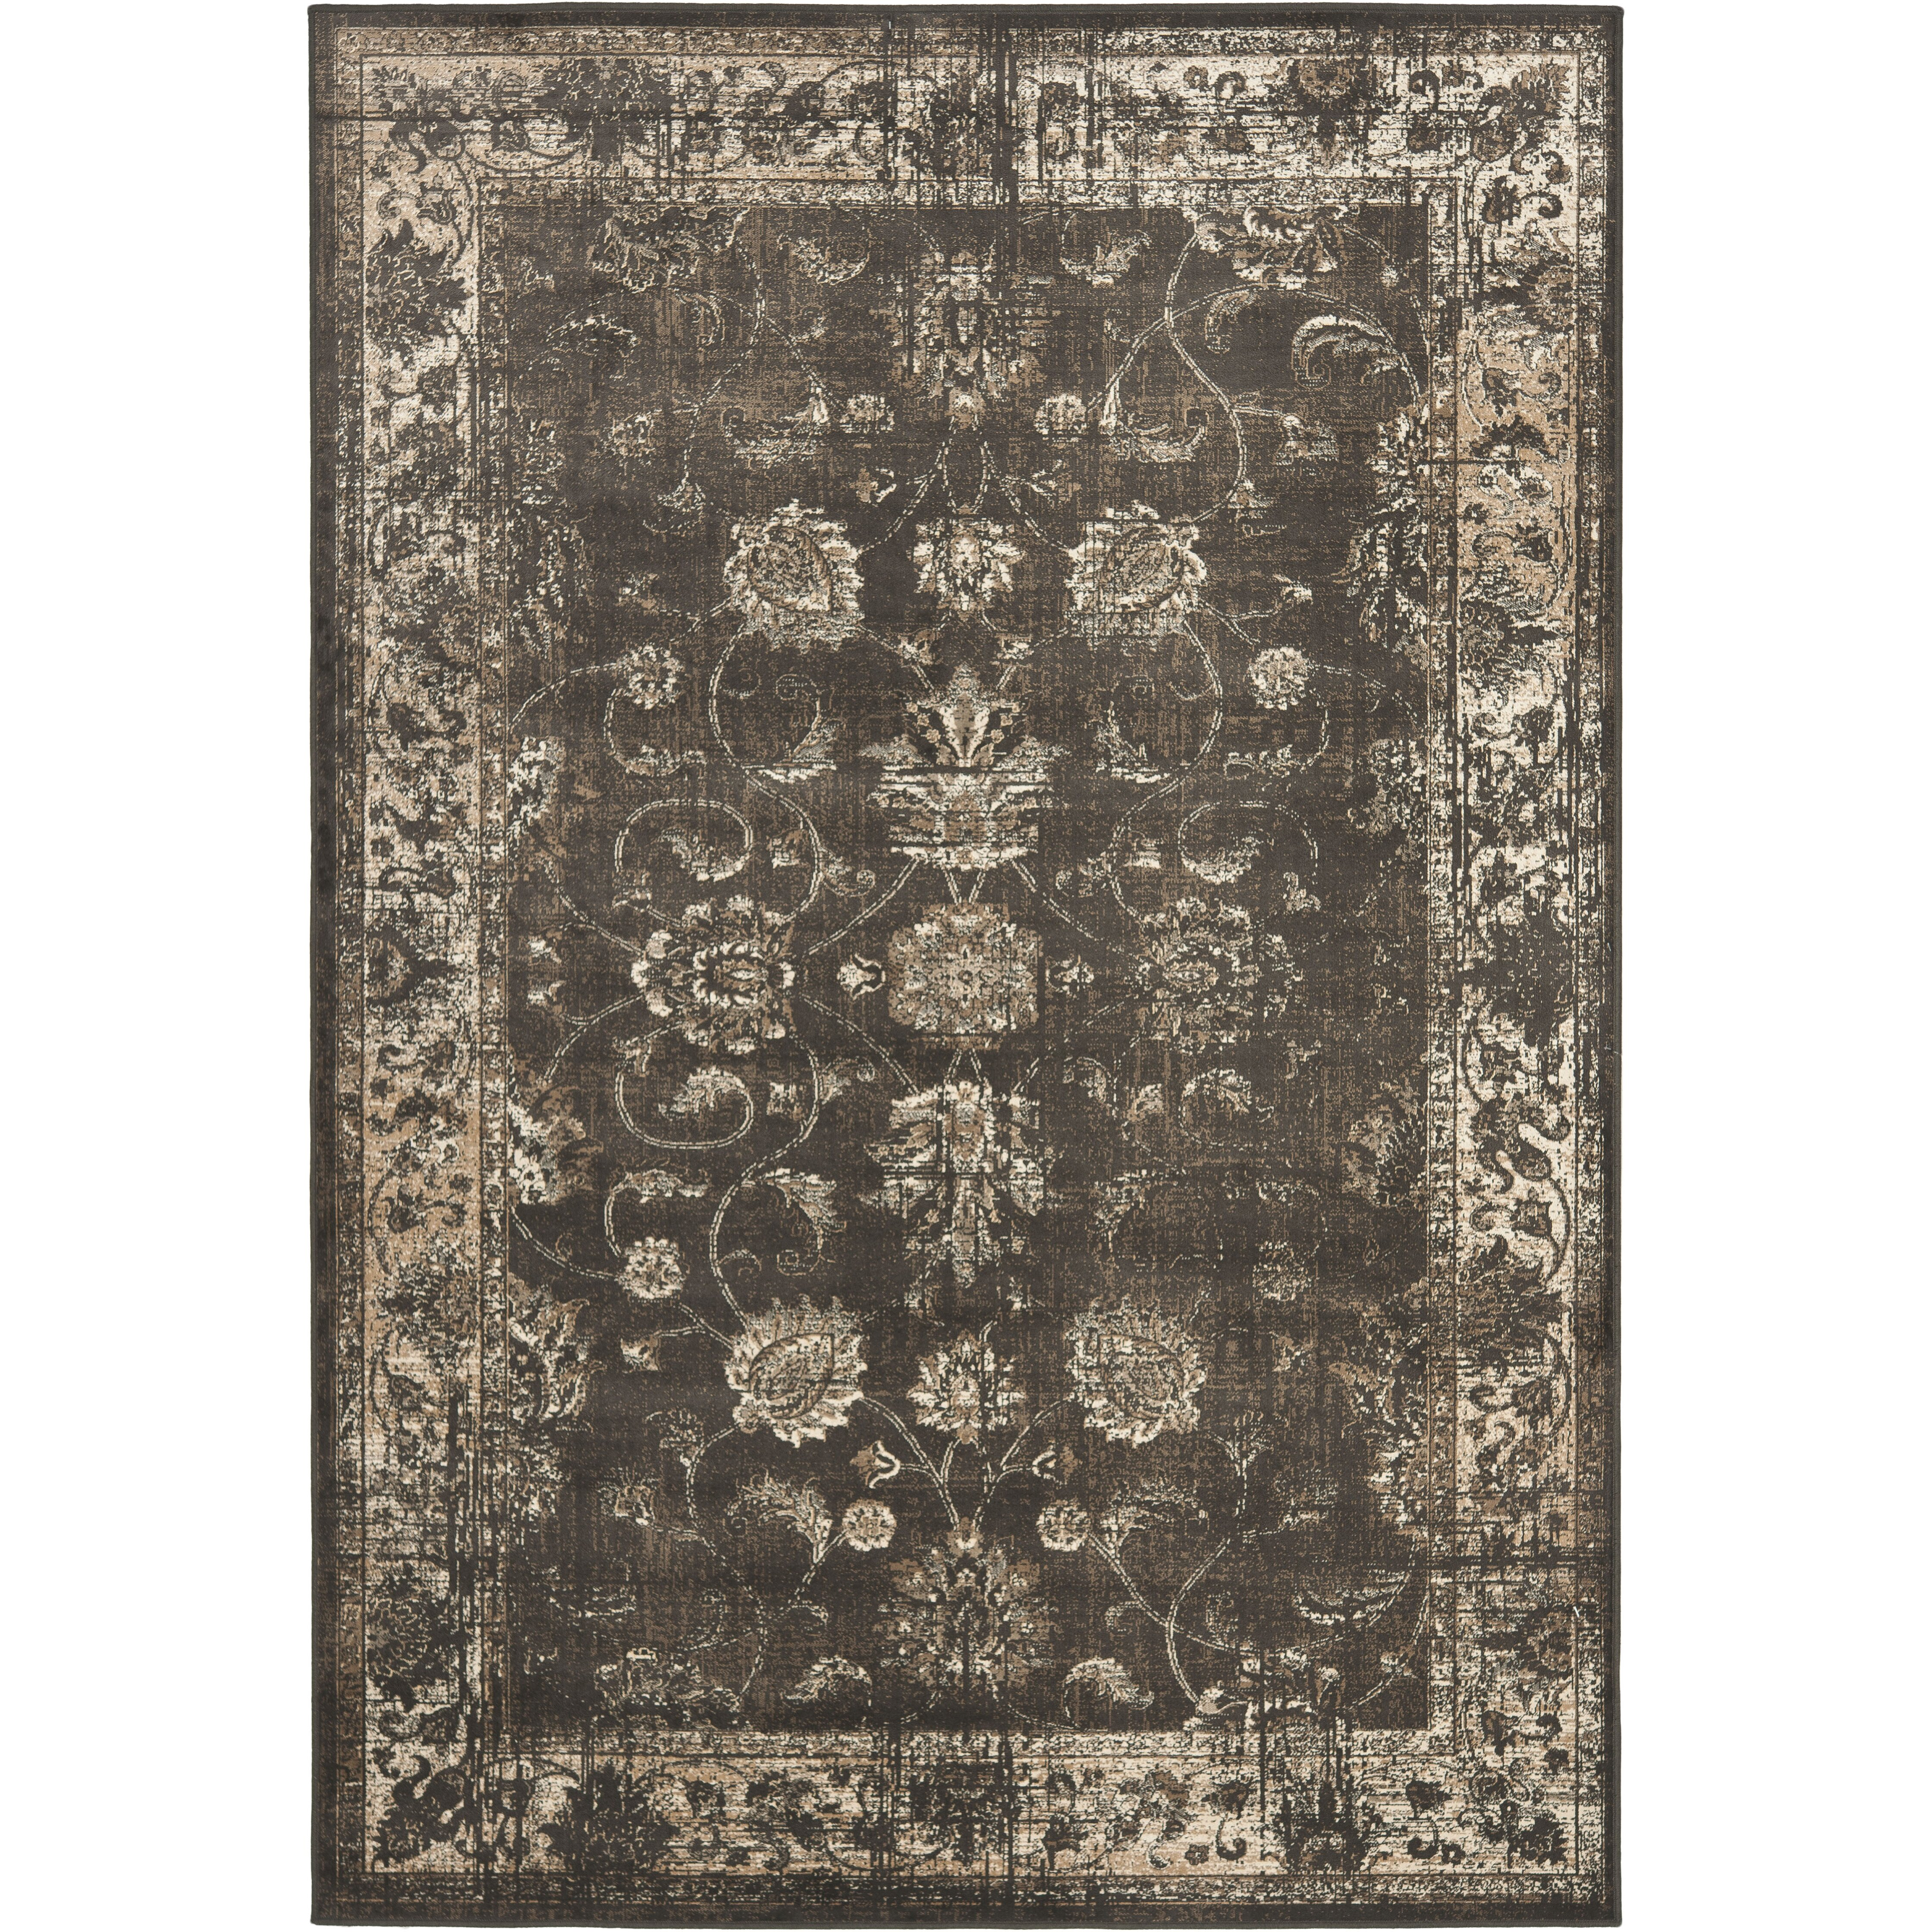 Safavieh vintage soft anthracite area rug reviews wayfair for Soft area rugs